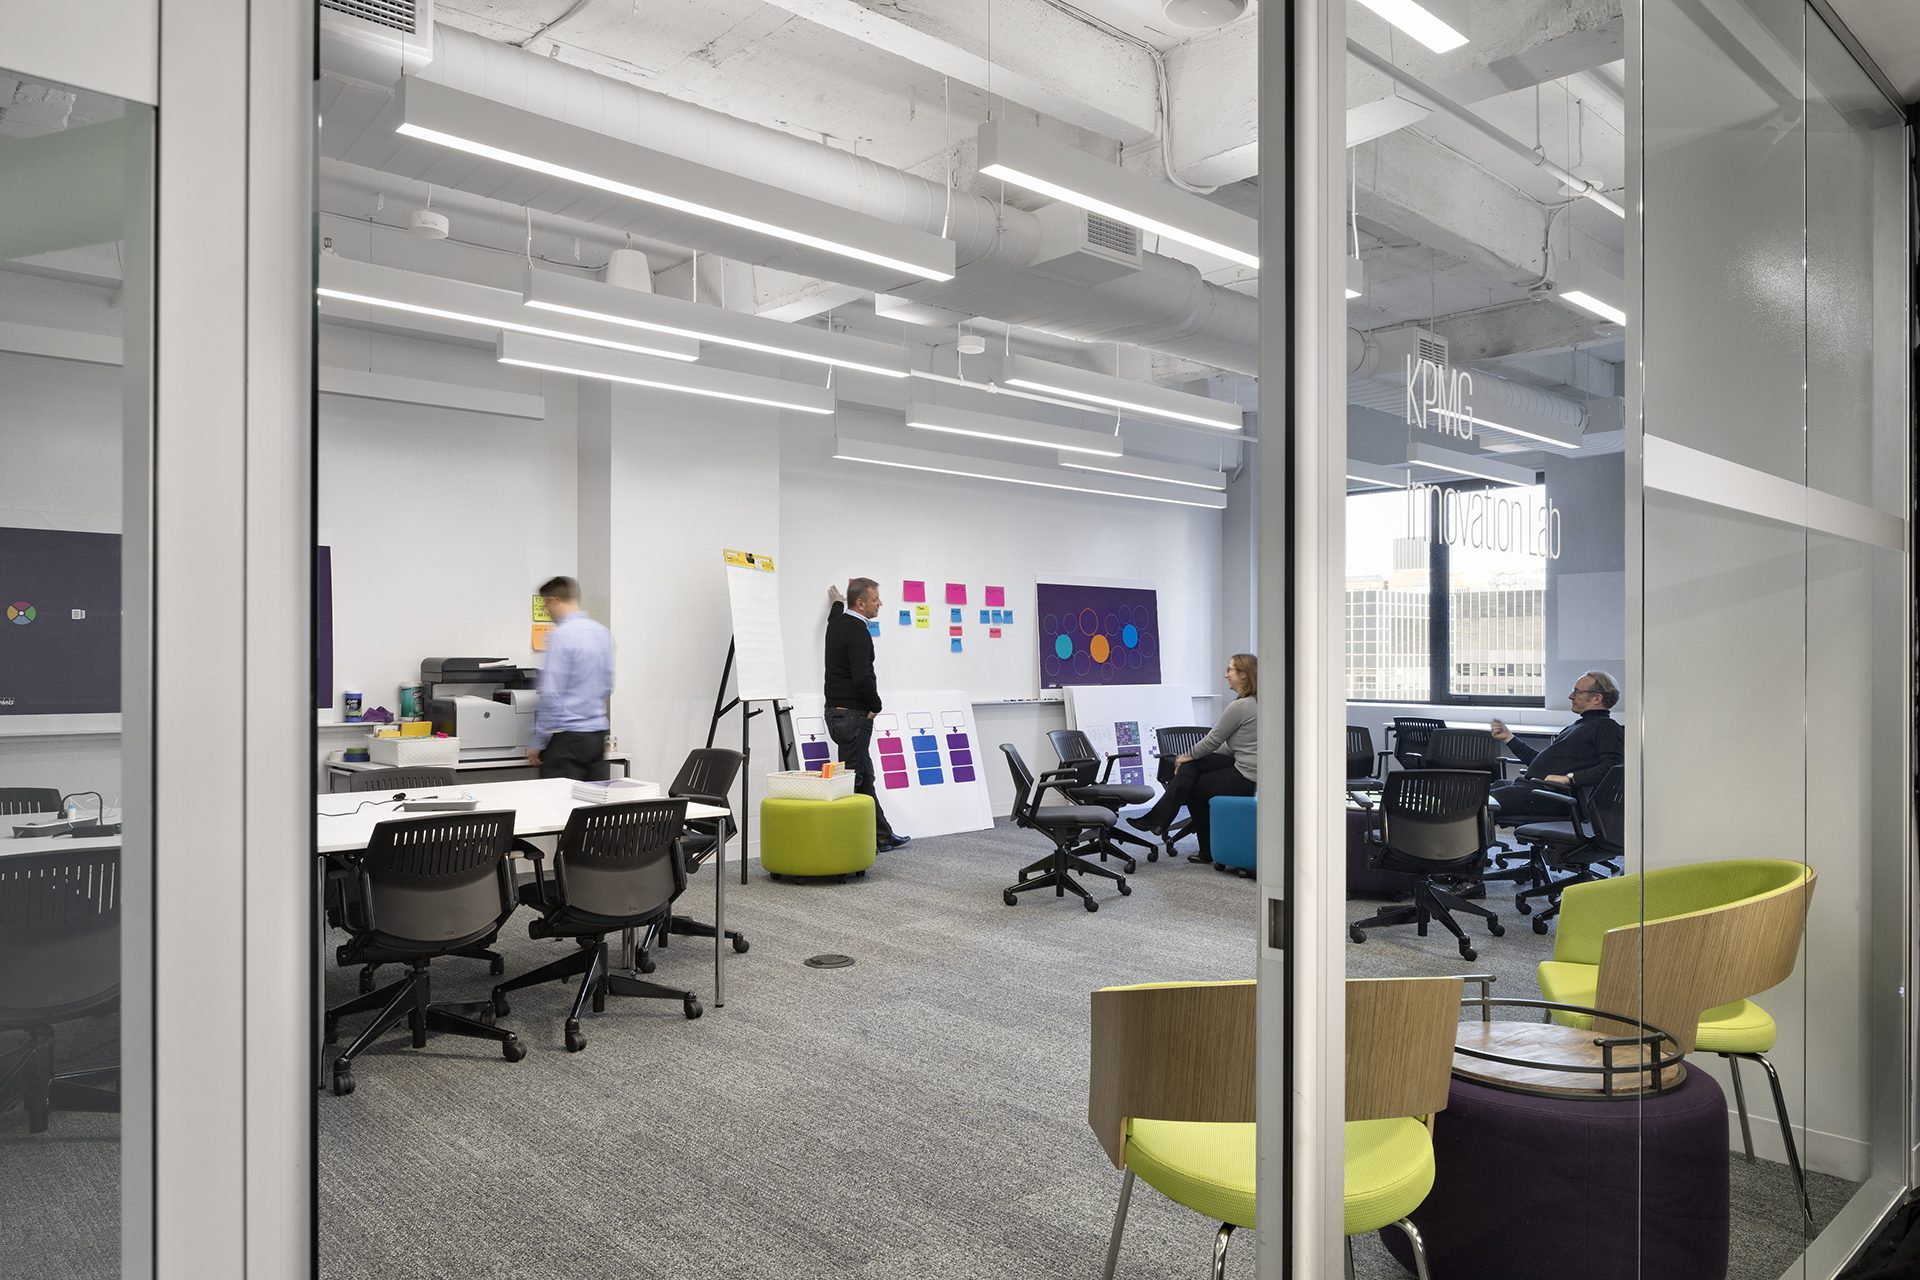 Collaboration lab and workshop space at the new KPMG Ignition, Innovation, and Insights Center